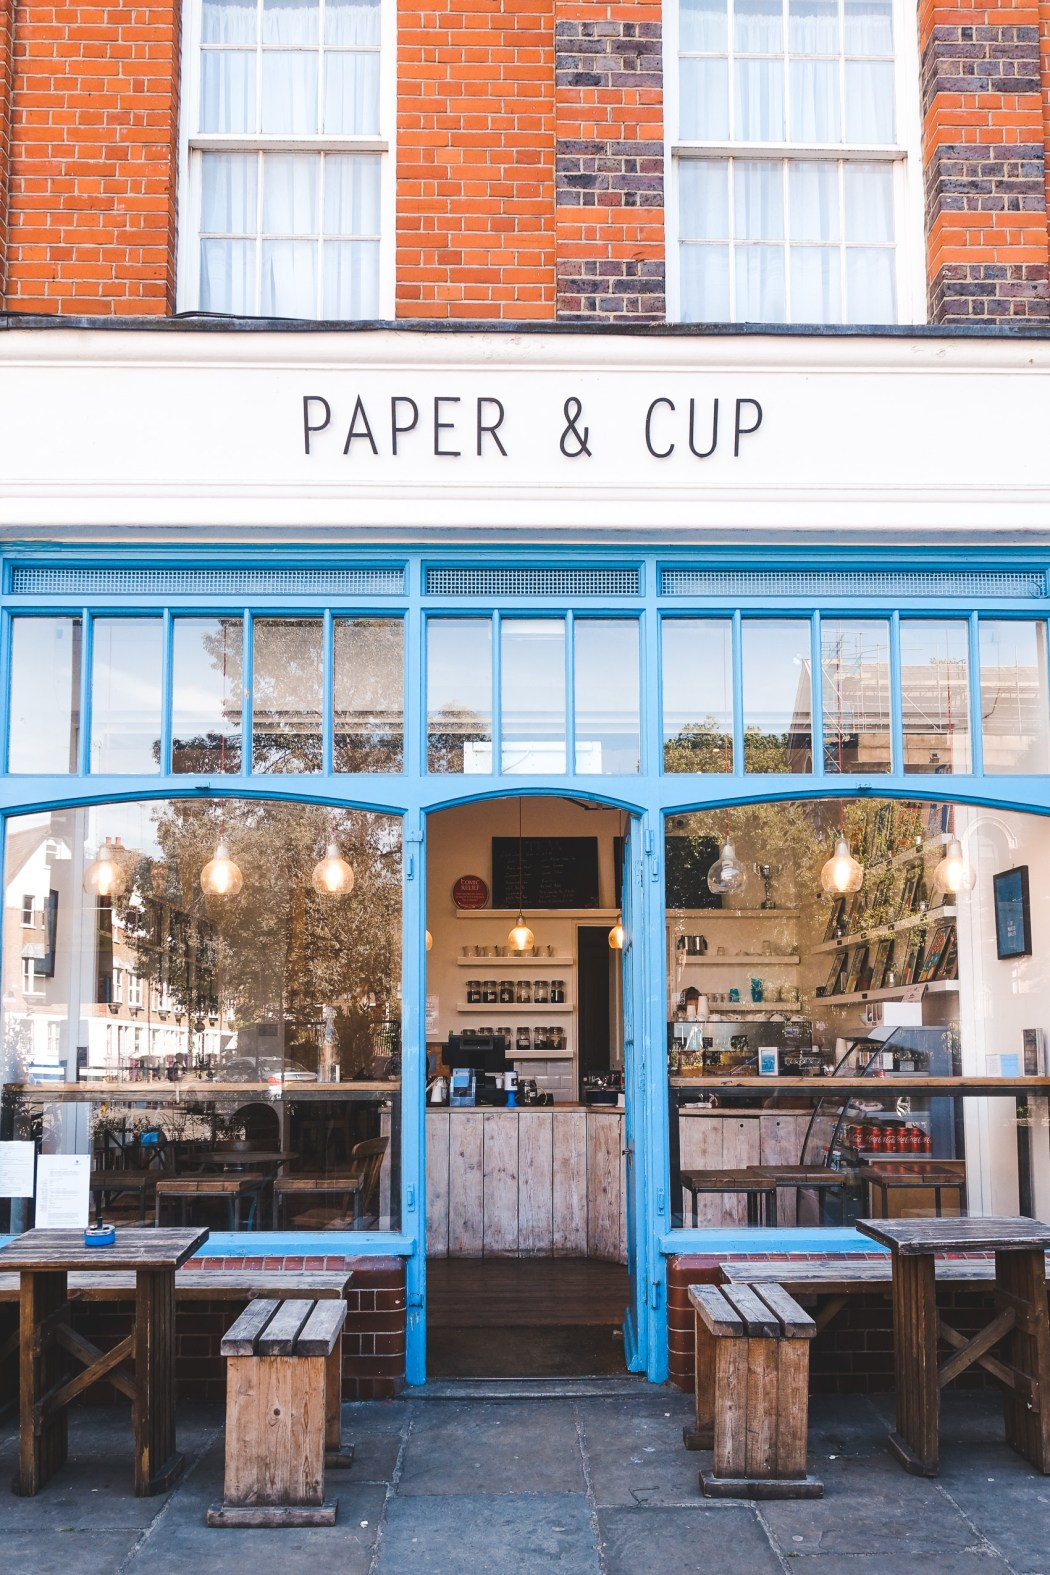 London Travel Guide - London's best Cafés